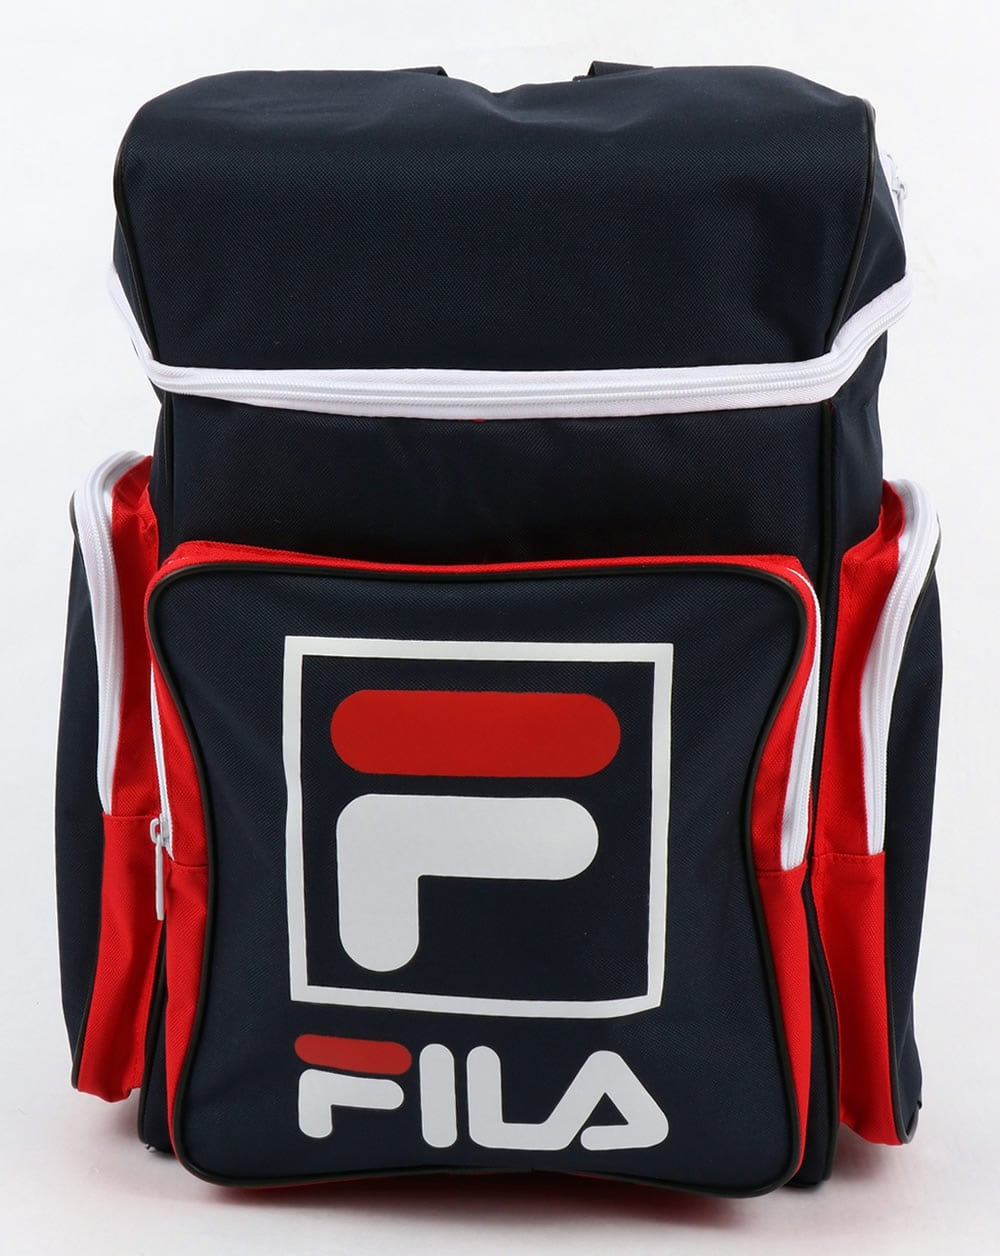 00414c0d294 fila holdall bag Sale,up to 71% DiscountsDiscounts